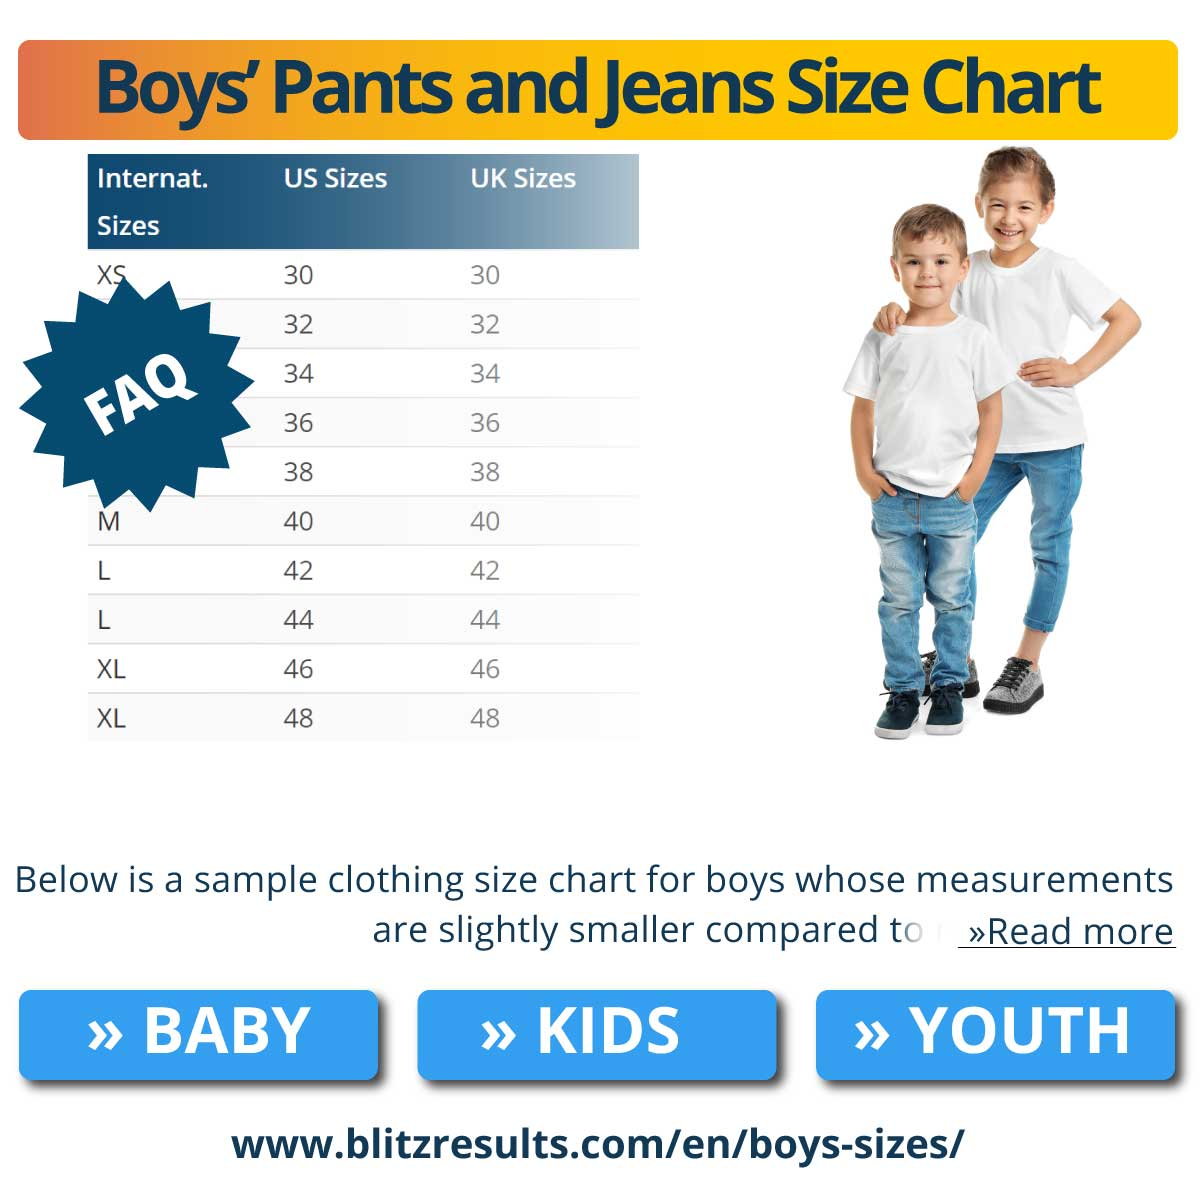 Boys' Pants and Jeans Size Chart